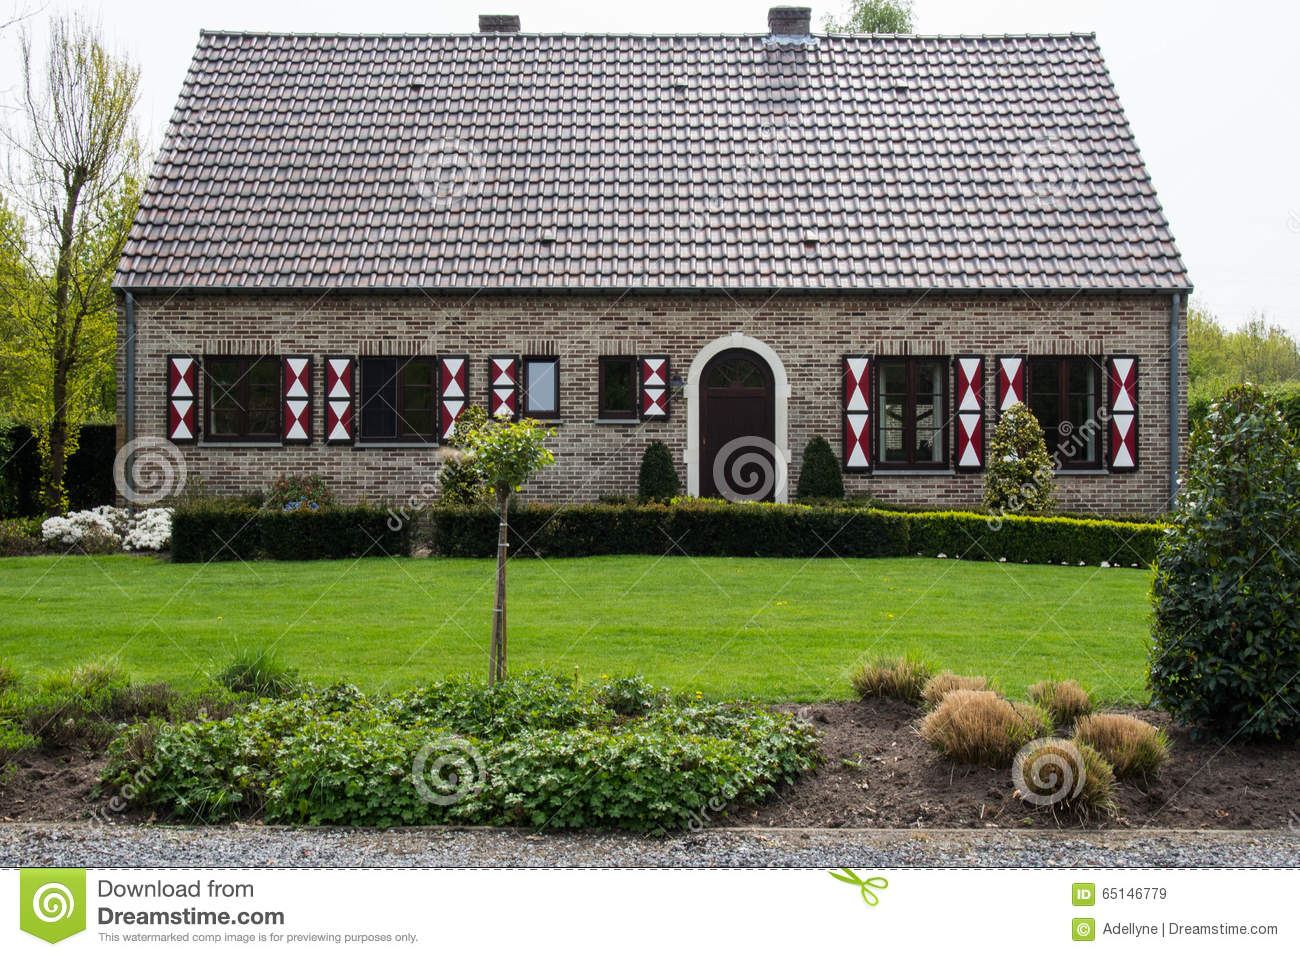 Traditionelles haus in limburg belgien stockfoto bild for Traditionelles thai haus